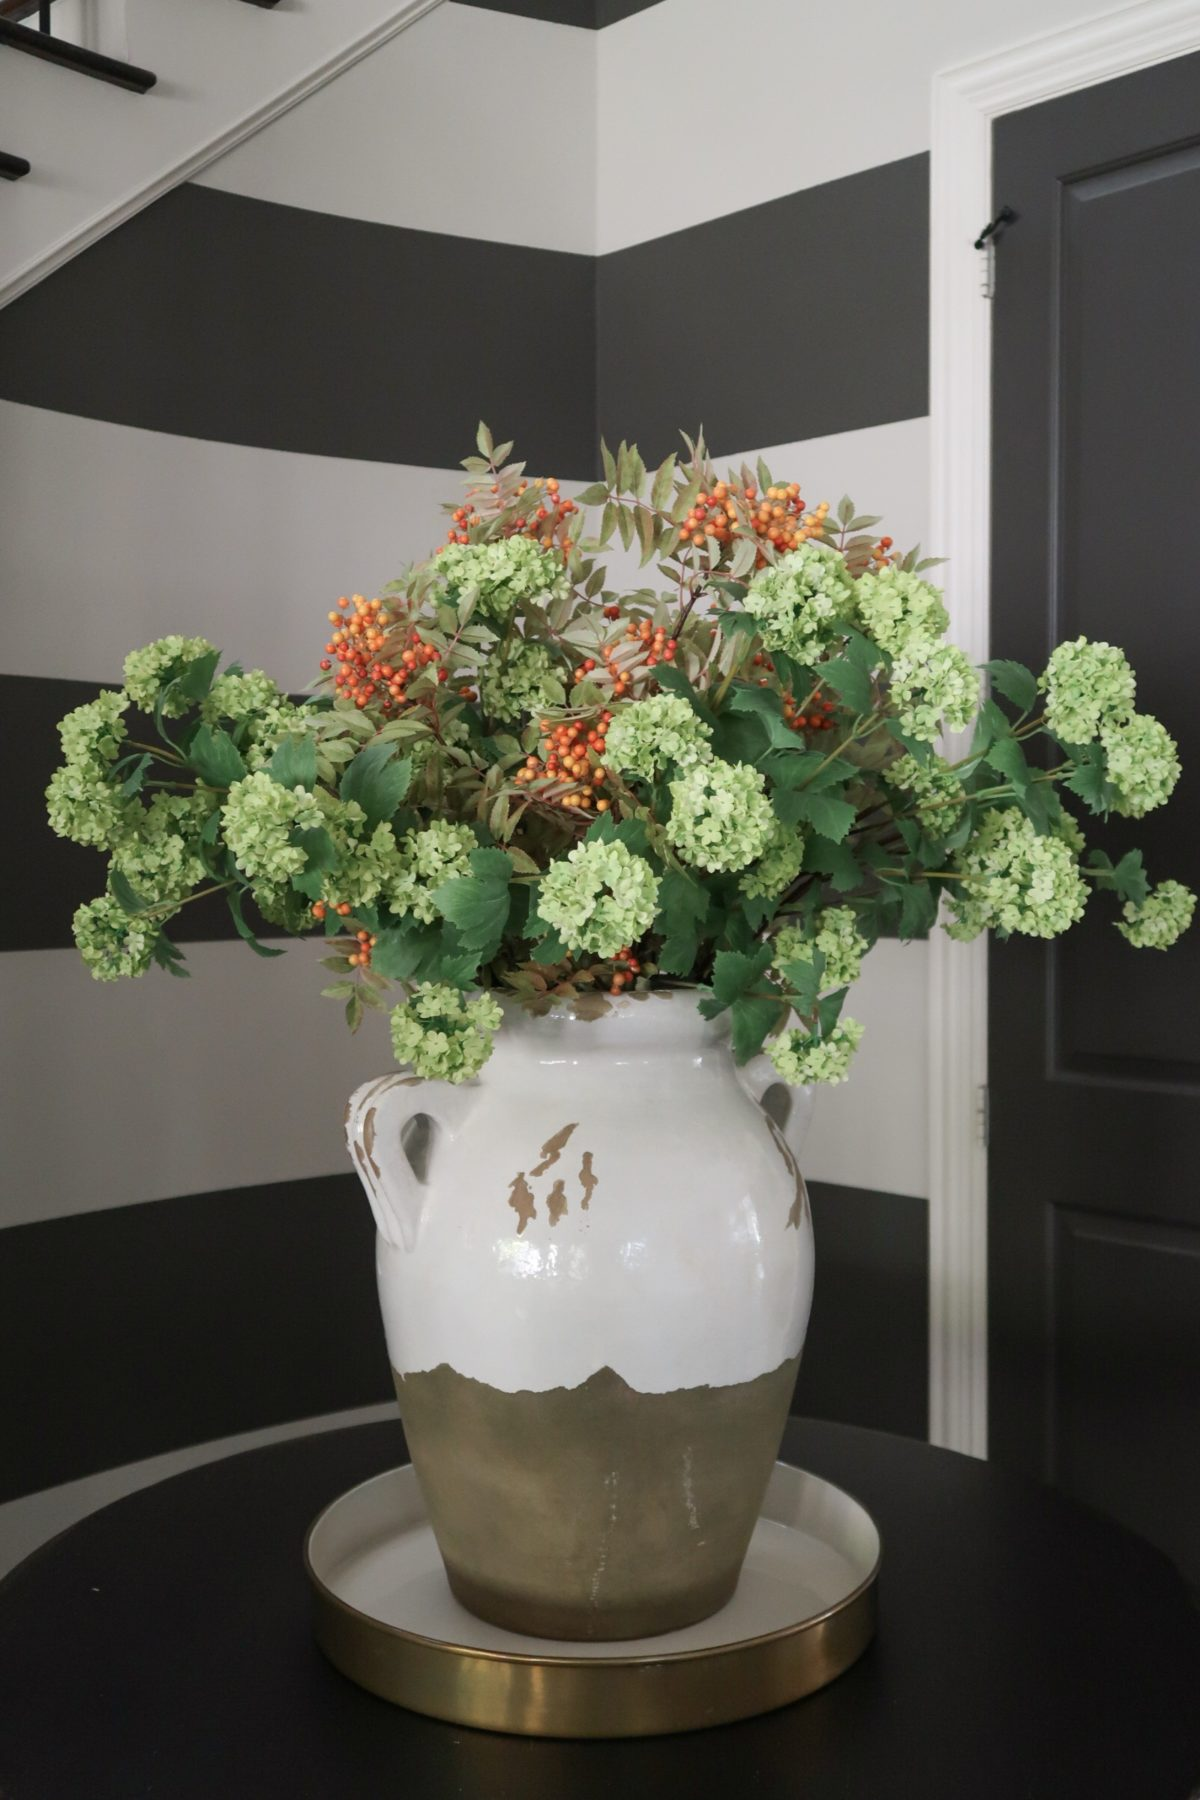 Home Decor Vase & Flowers